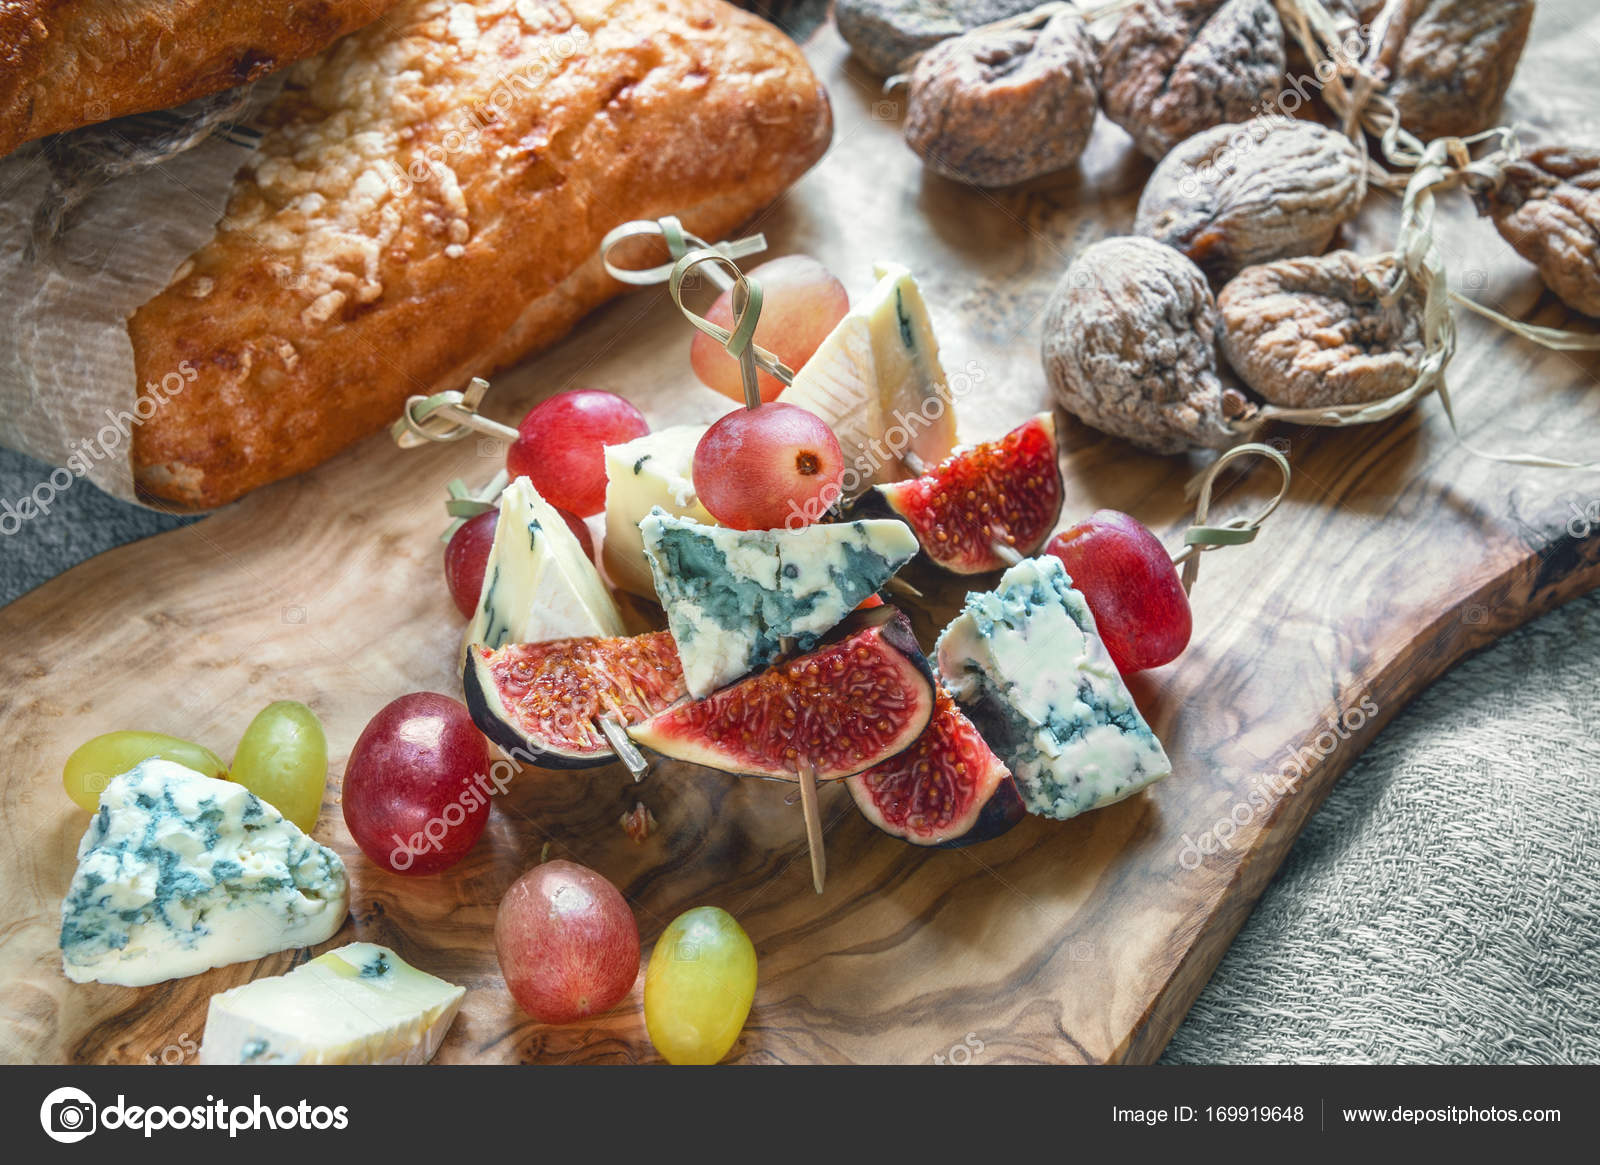 Italian Focaccia bread with cheese and a cheese plate with figs and Gorgonzola brie & Italian Focaccia bread with cheese and a cheese plate with figs and ...